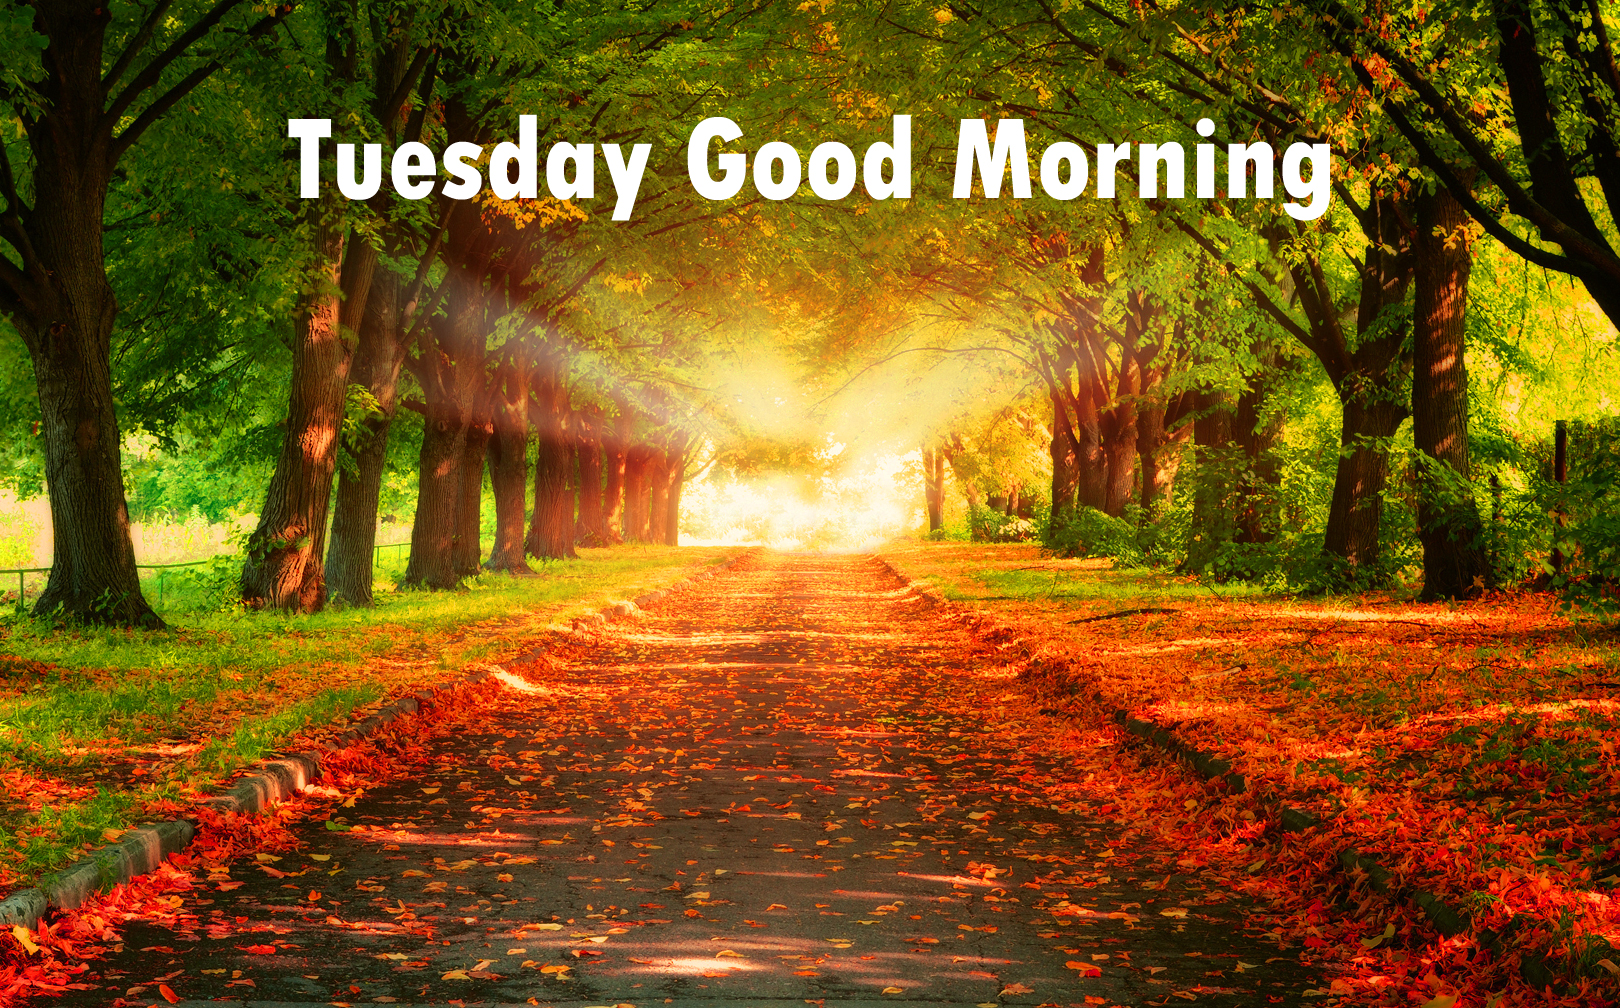 Tuesday Good Morning Wishes, Have great day ahead |Great Tuesday Morning Quotes